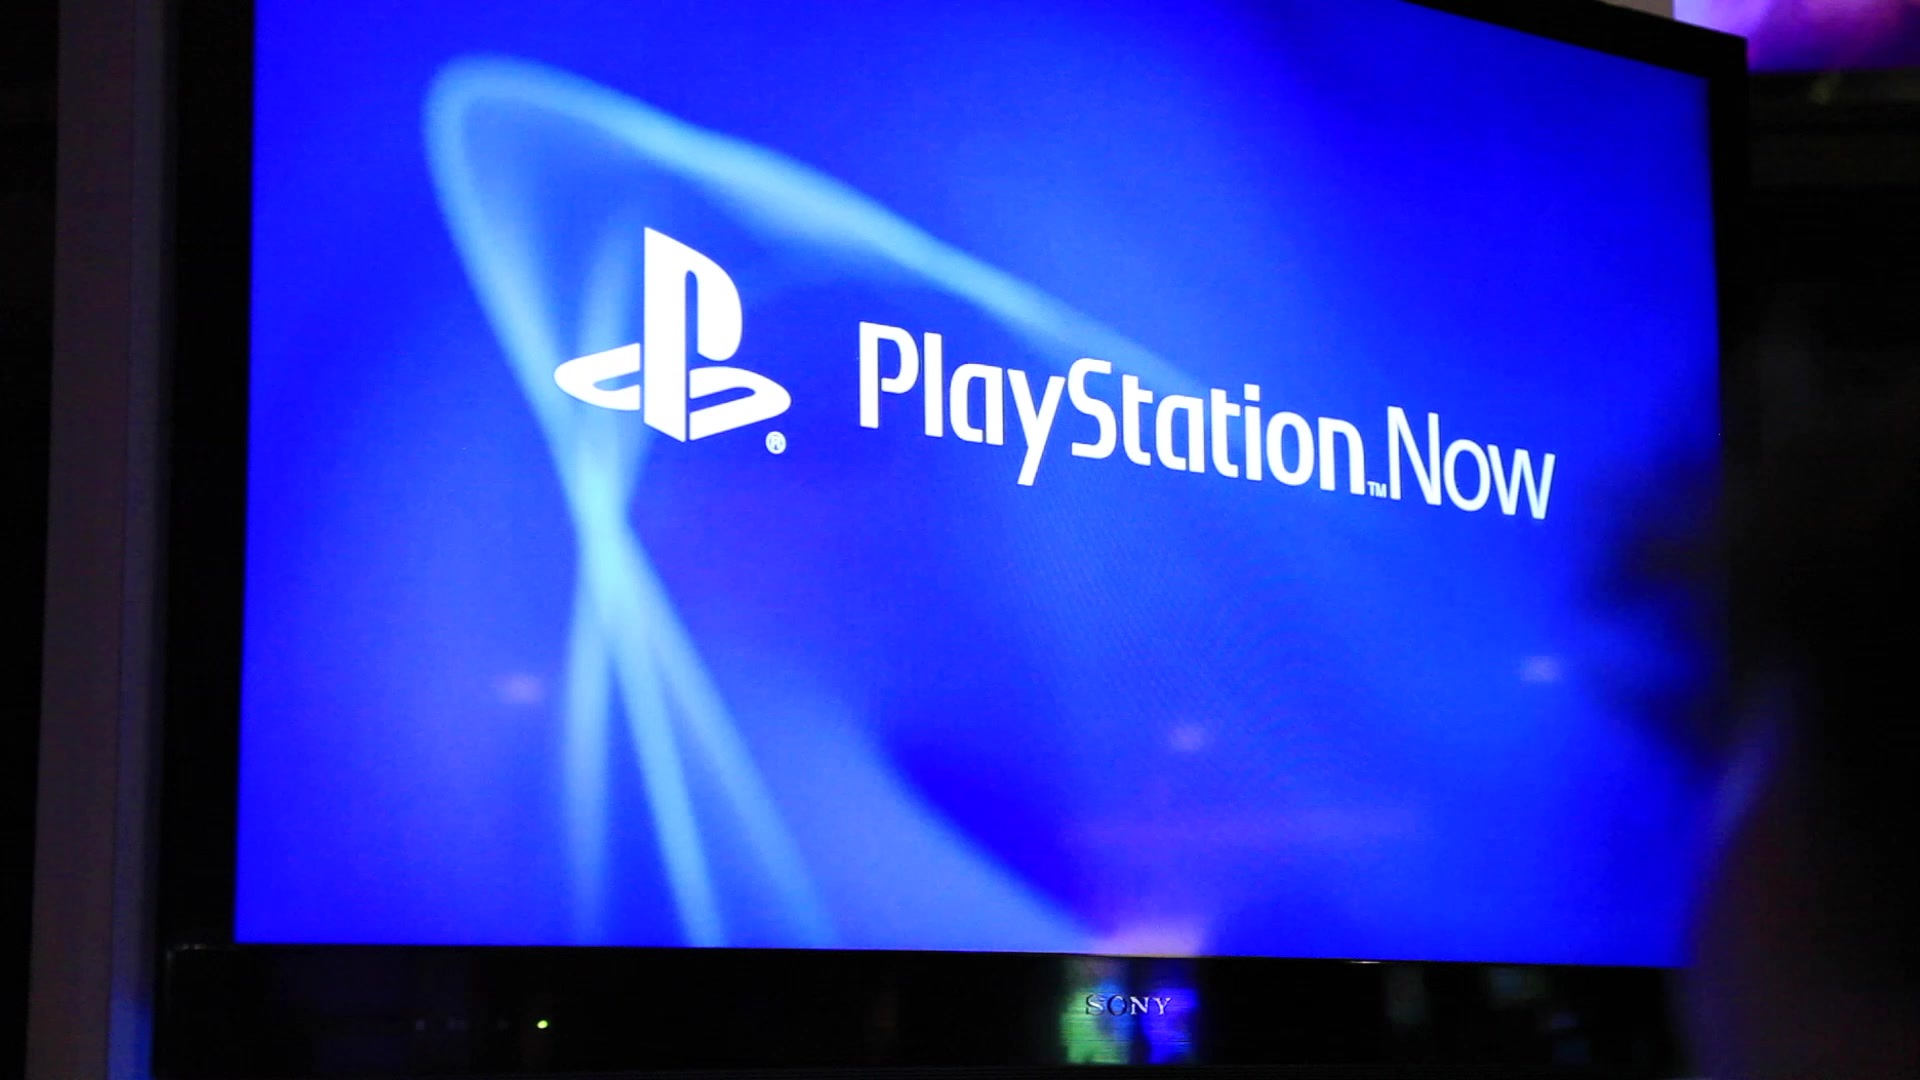 PlayStation Now Coming To Windows PC Alongside New Wireless Adaptor 1352 image1